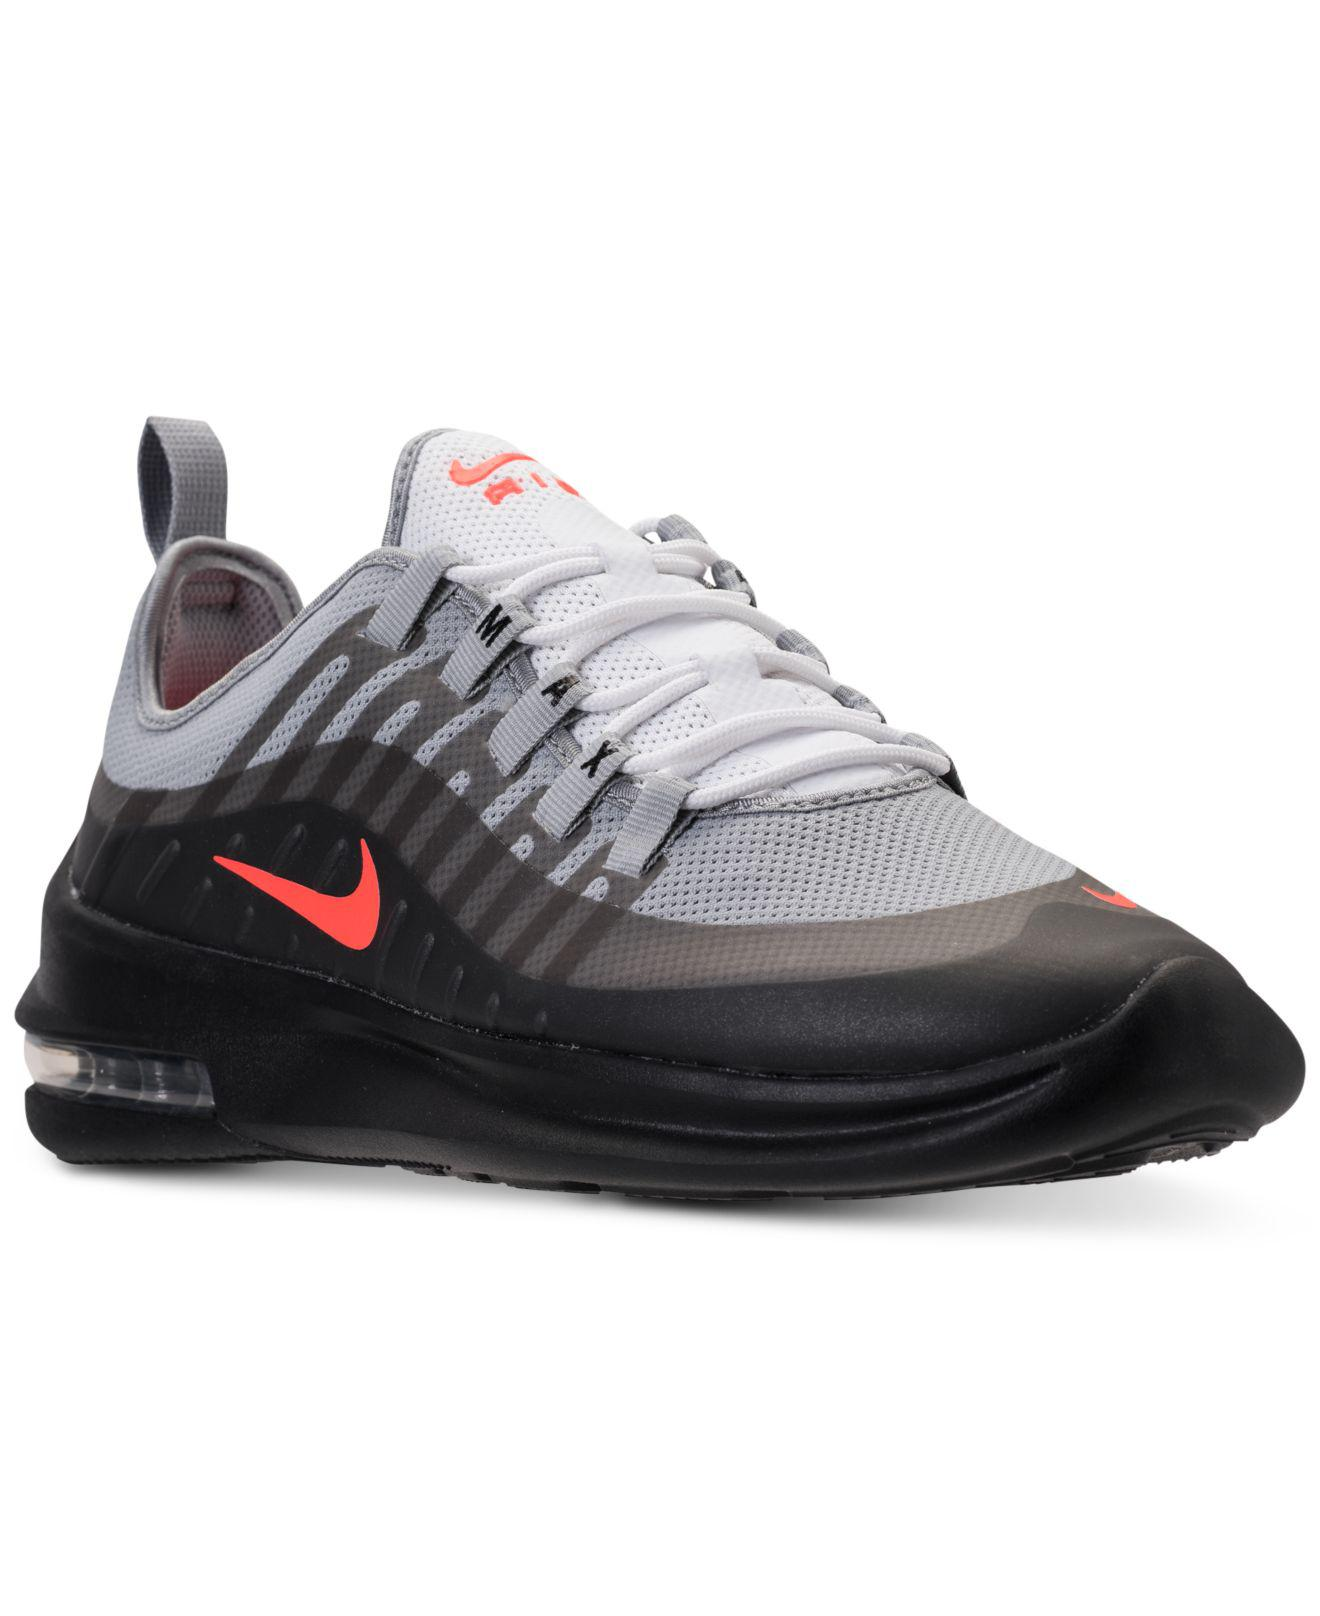 c92b03fbd3 nike-WOLF-GREYTOTAL-CRIMSON-B-Air-Max-Axis-Casual-Sneakers-From-Finish-Line.jpeg